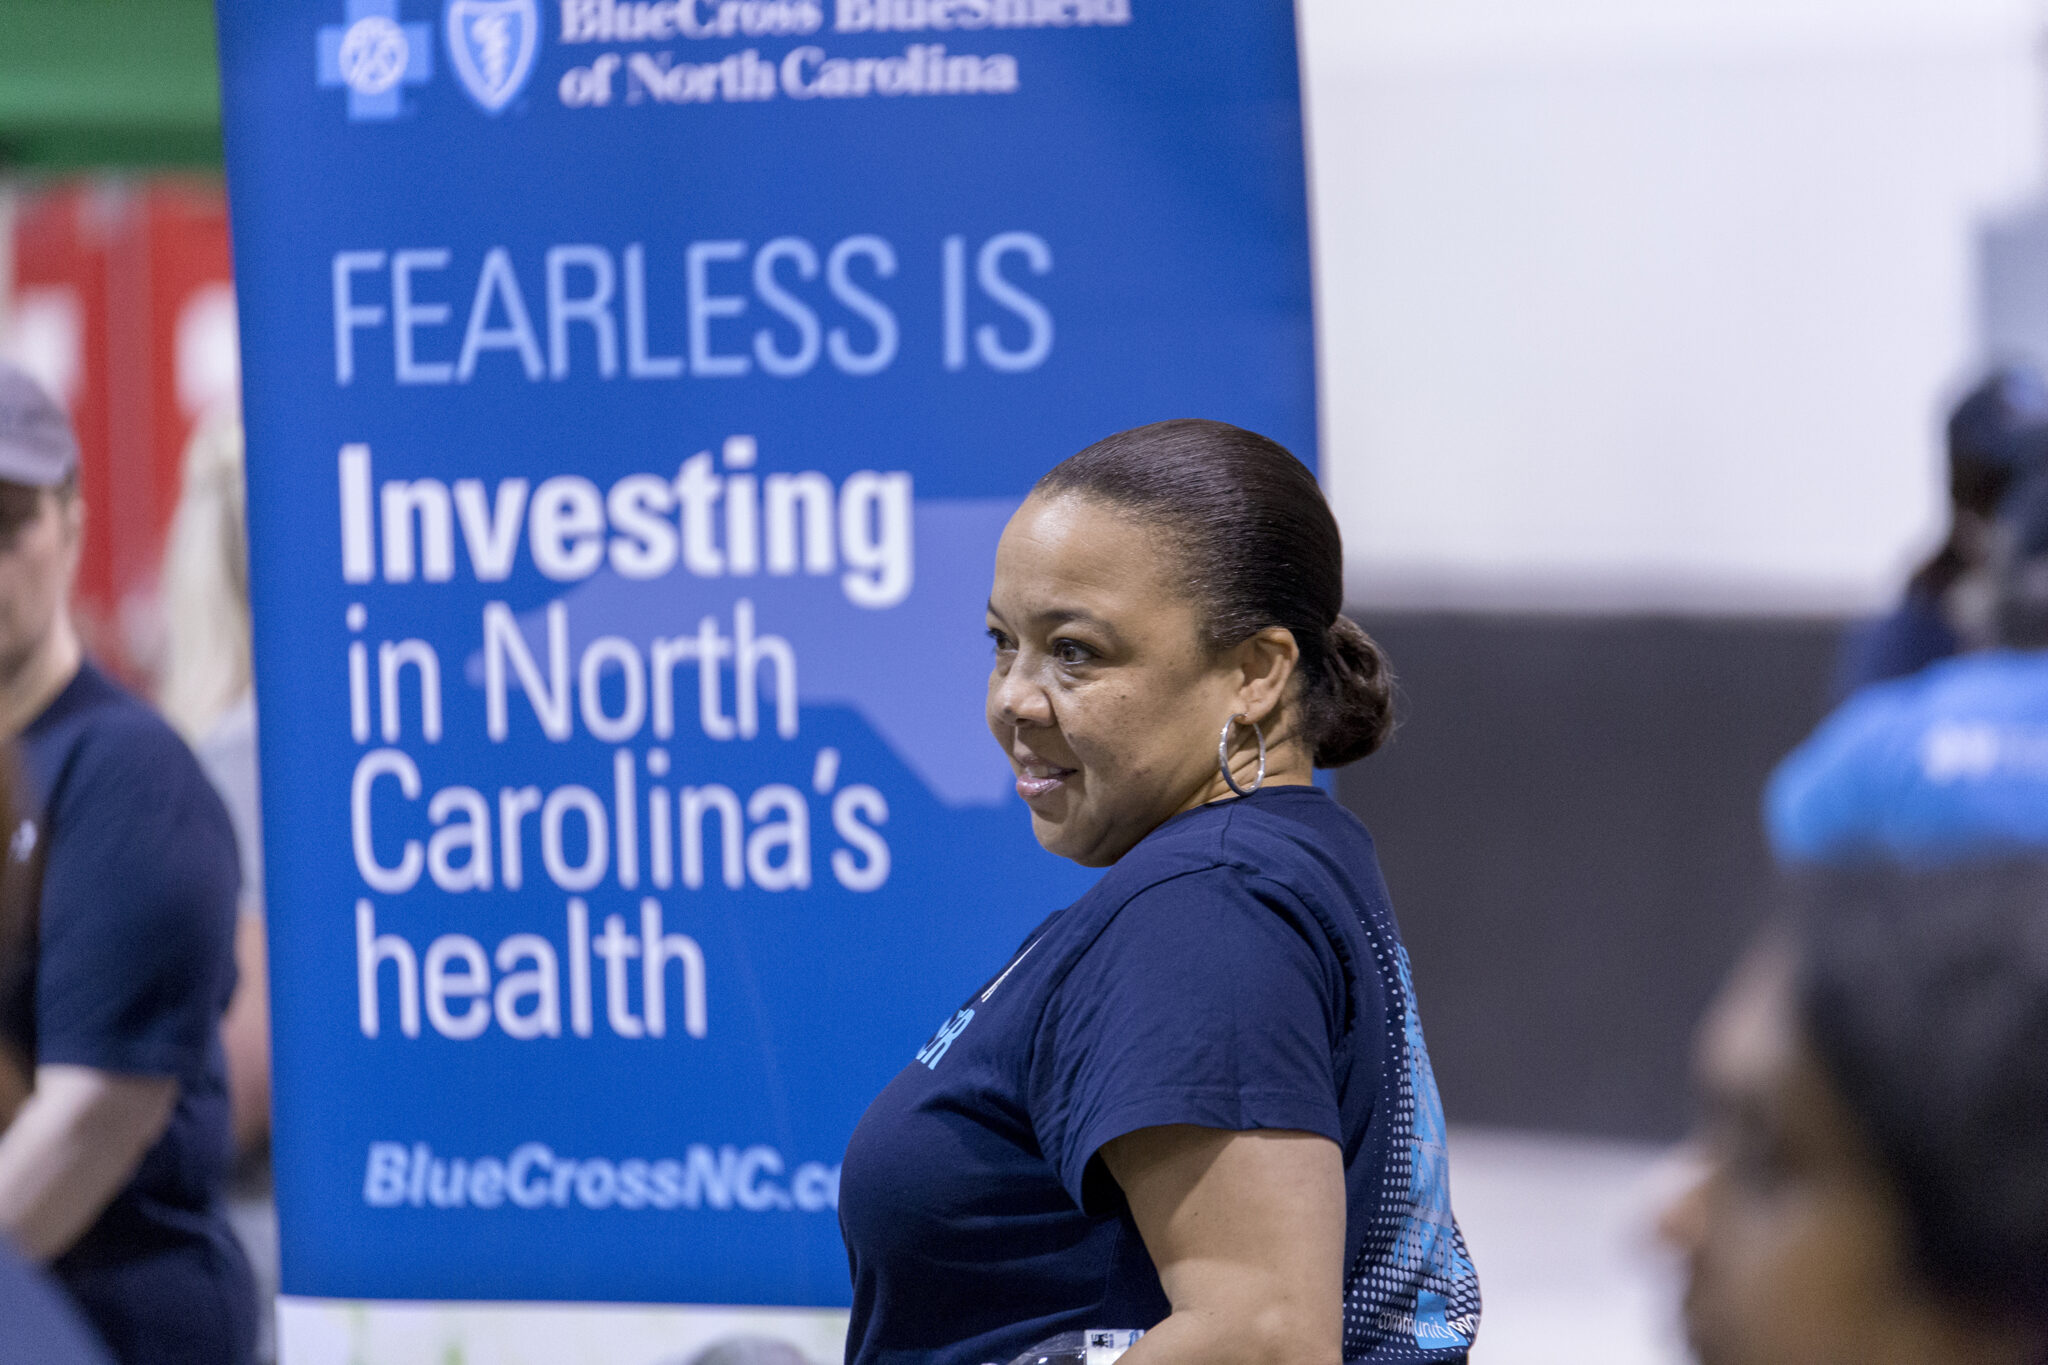 Blue Cross volunteer in front of a sign that reads